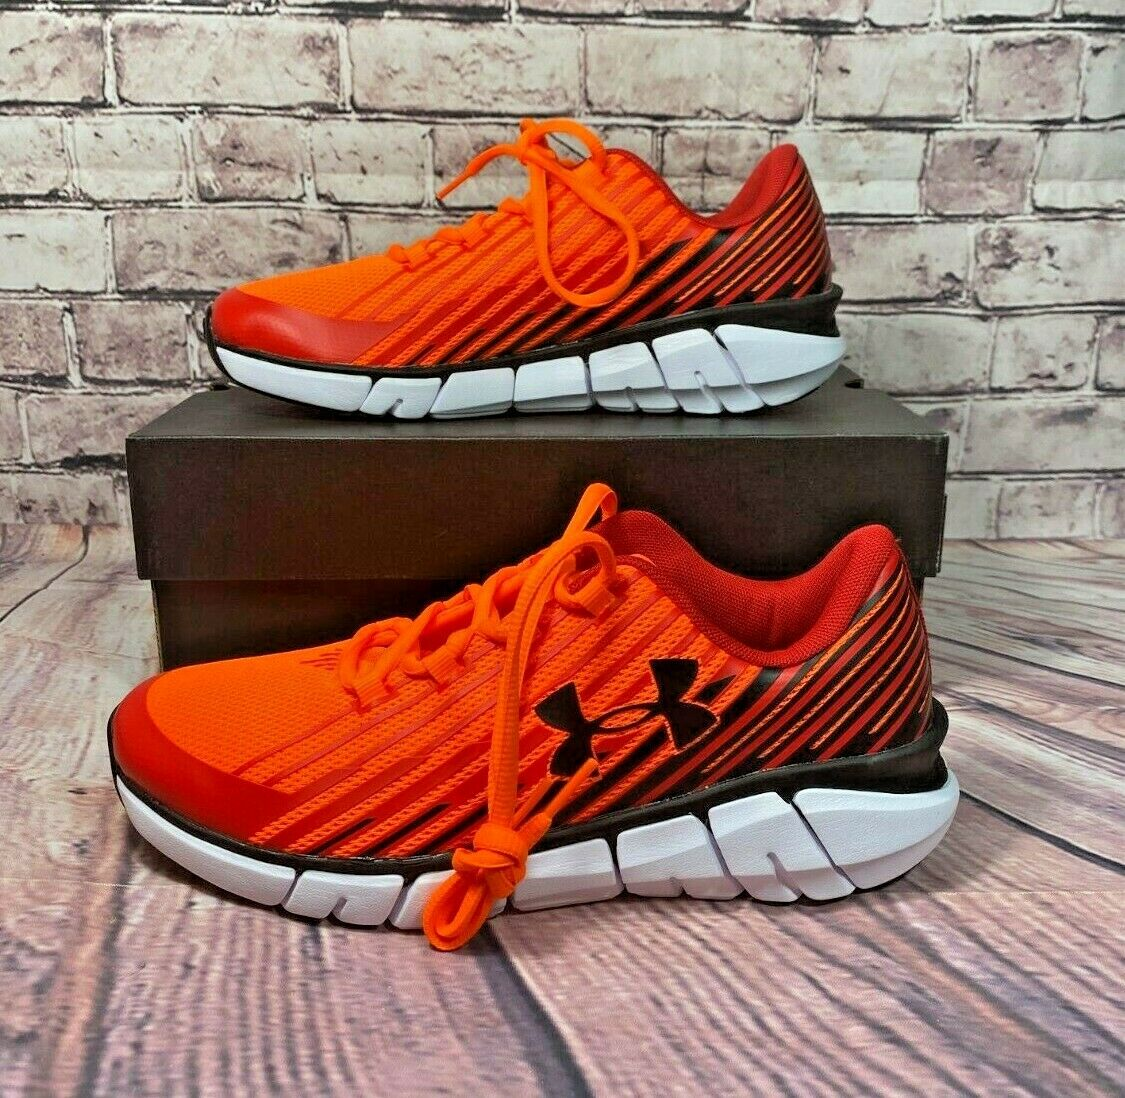 Under Armour BGS Spine Vice Fade Shoes